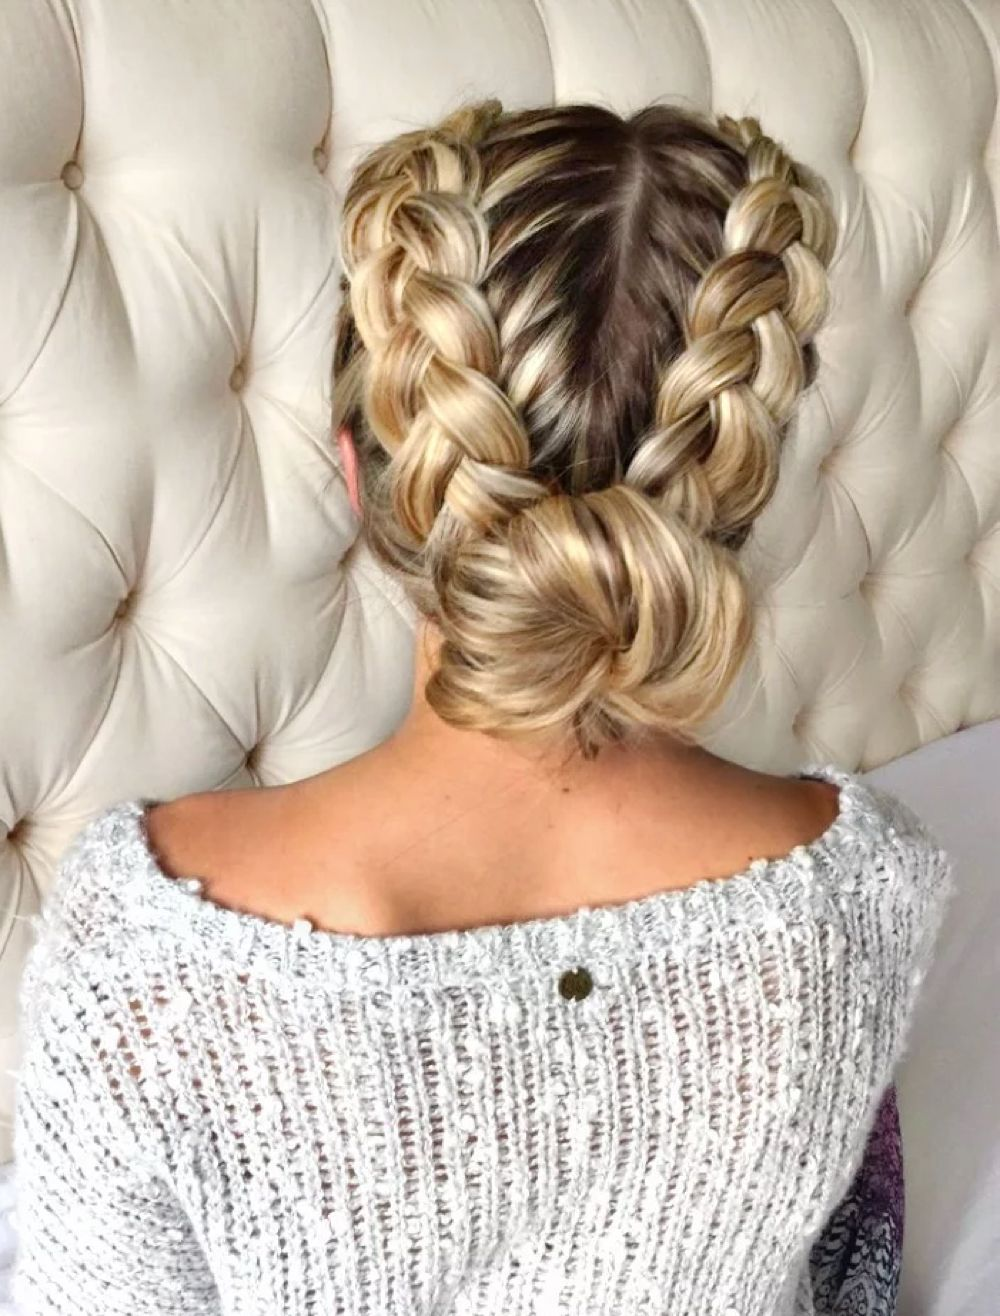 29 Gorgeous Braided Updos For Every Occasion In 2020 In 2020 Braided Hairstyles Updo Dance Hairstyles Hair Styles